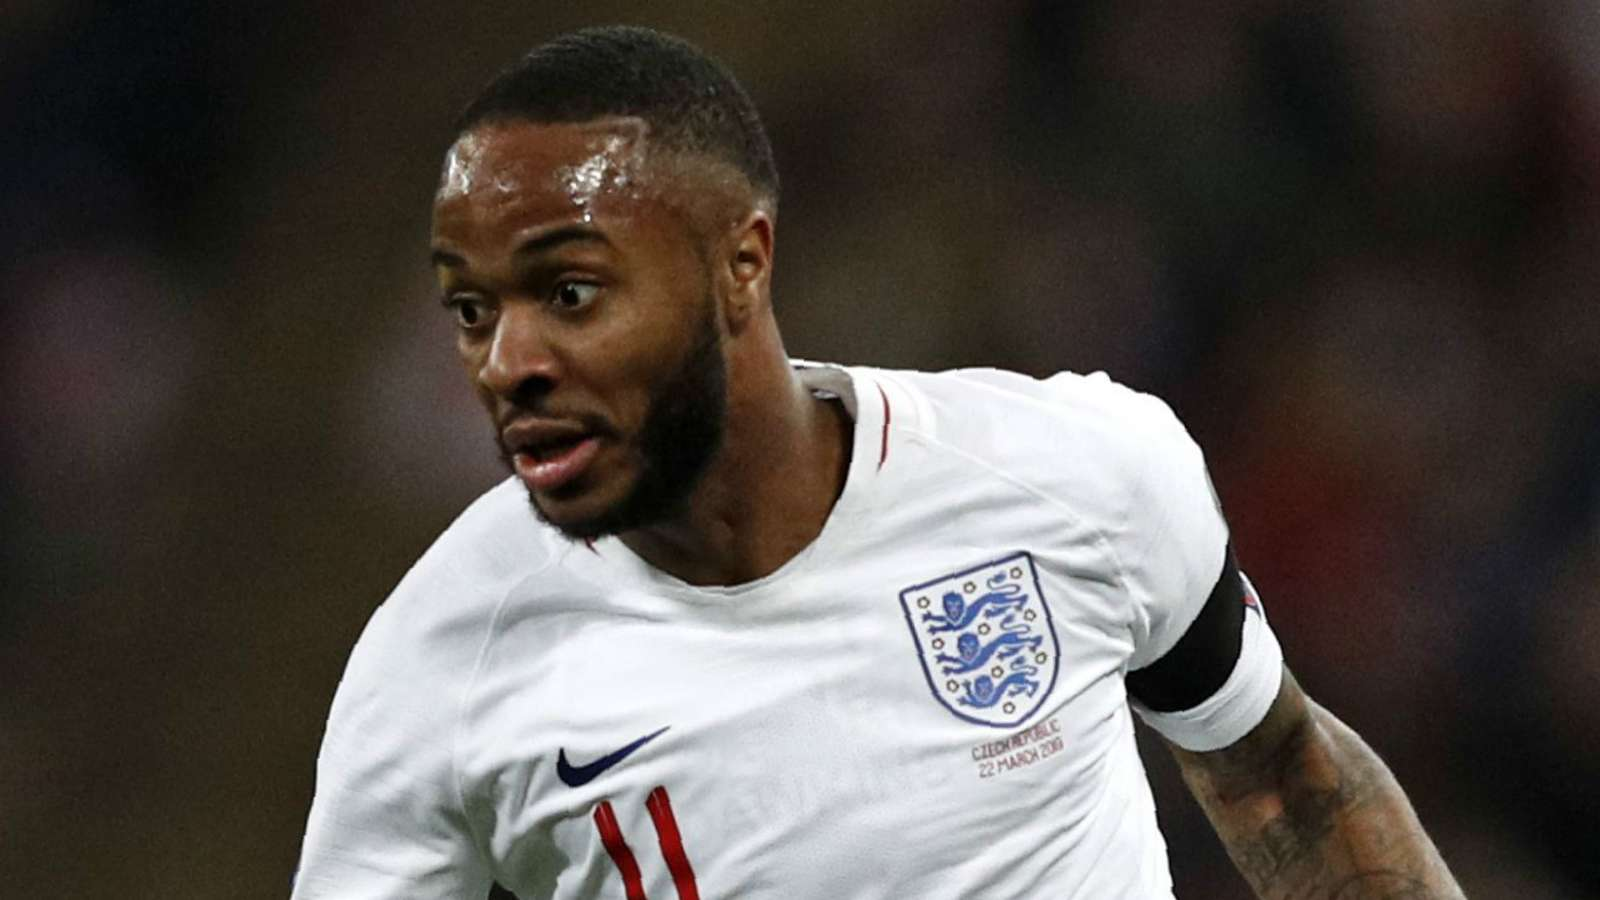 Southgate Sterling has the making of a future England captain